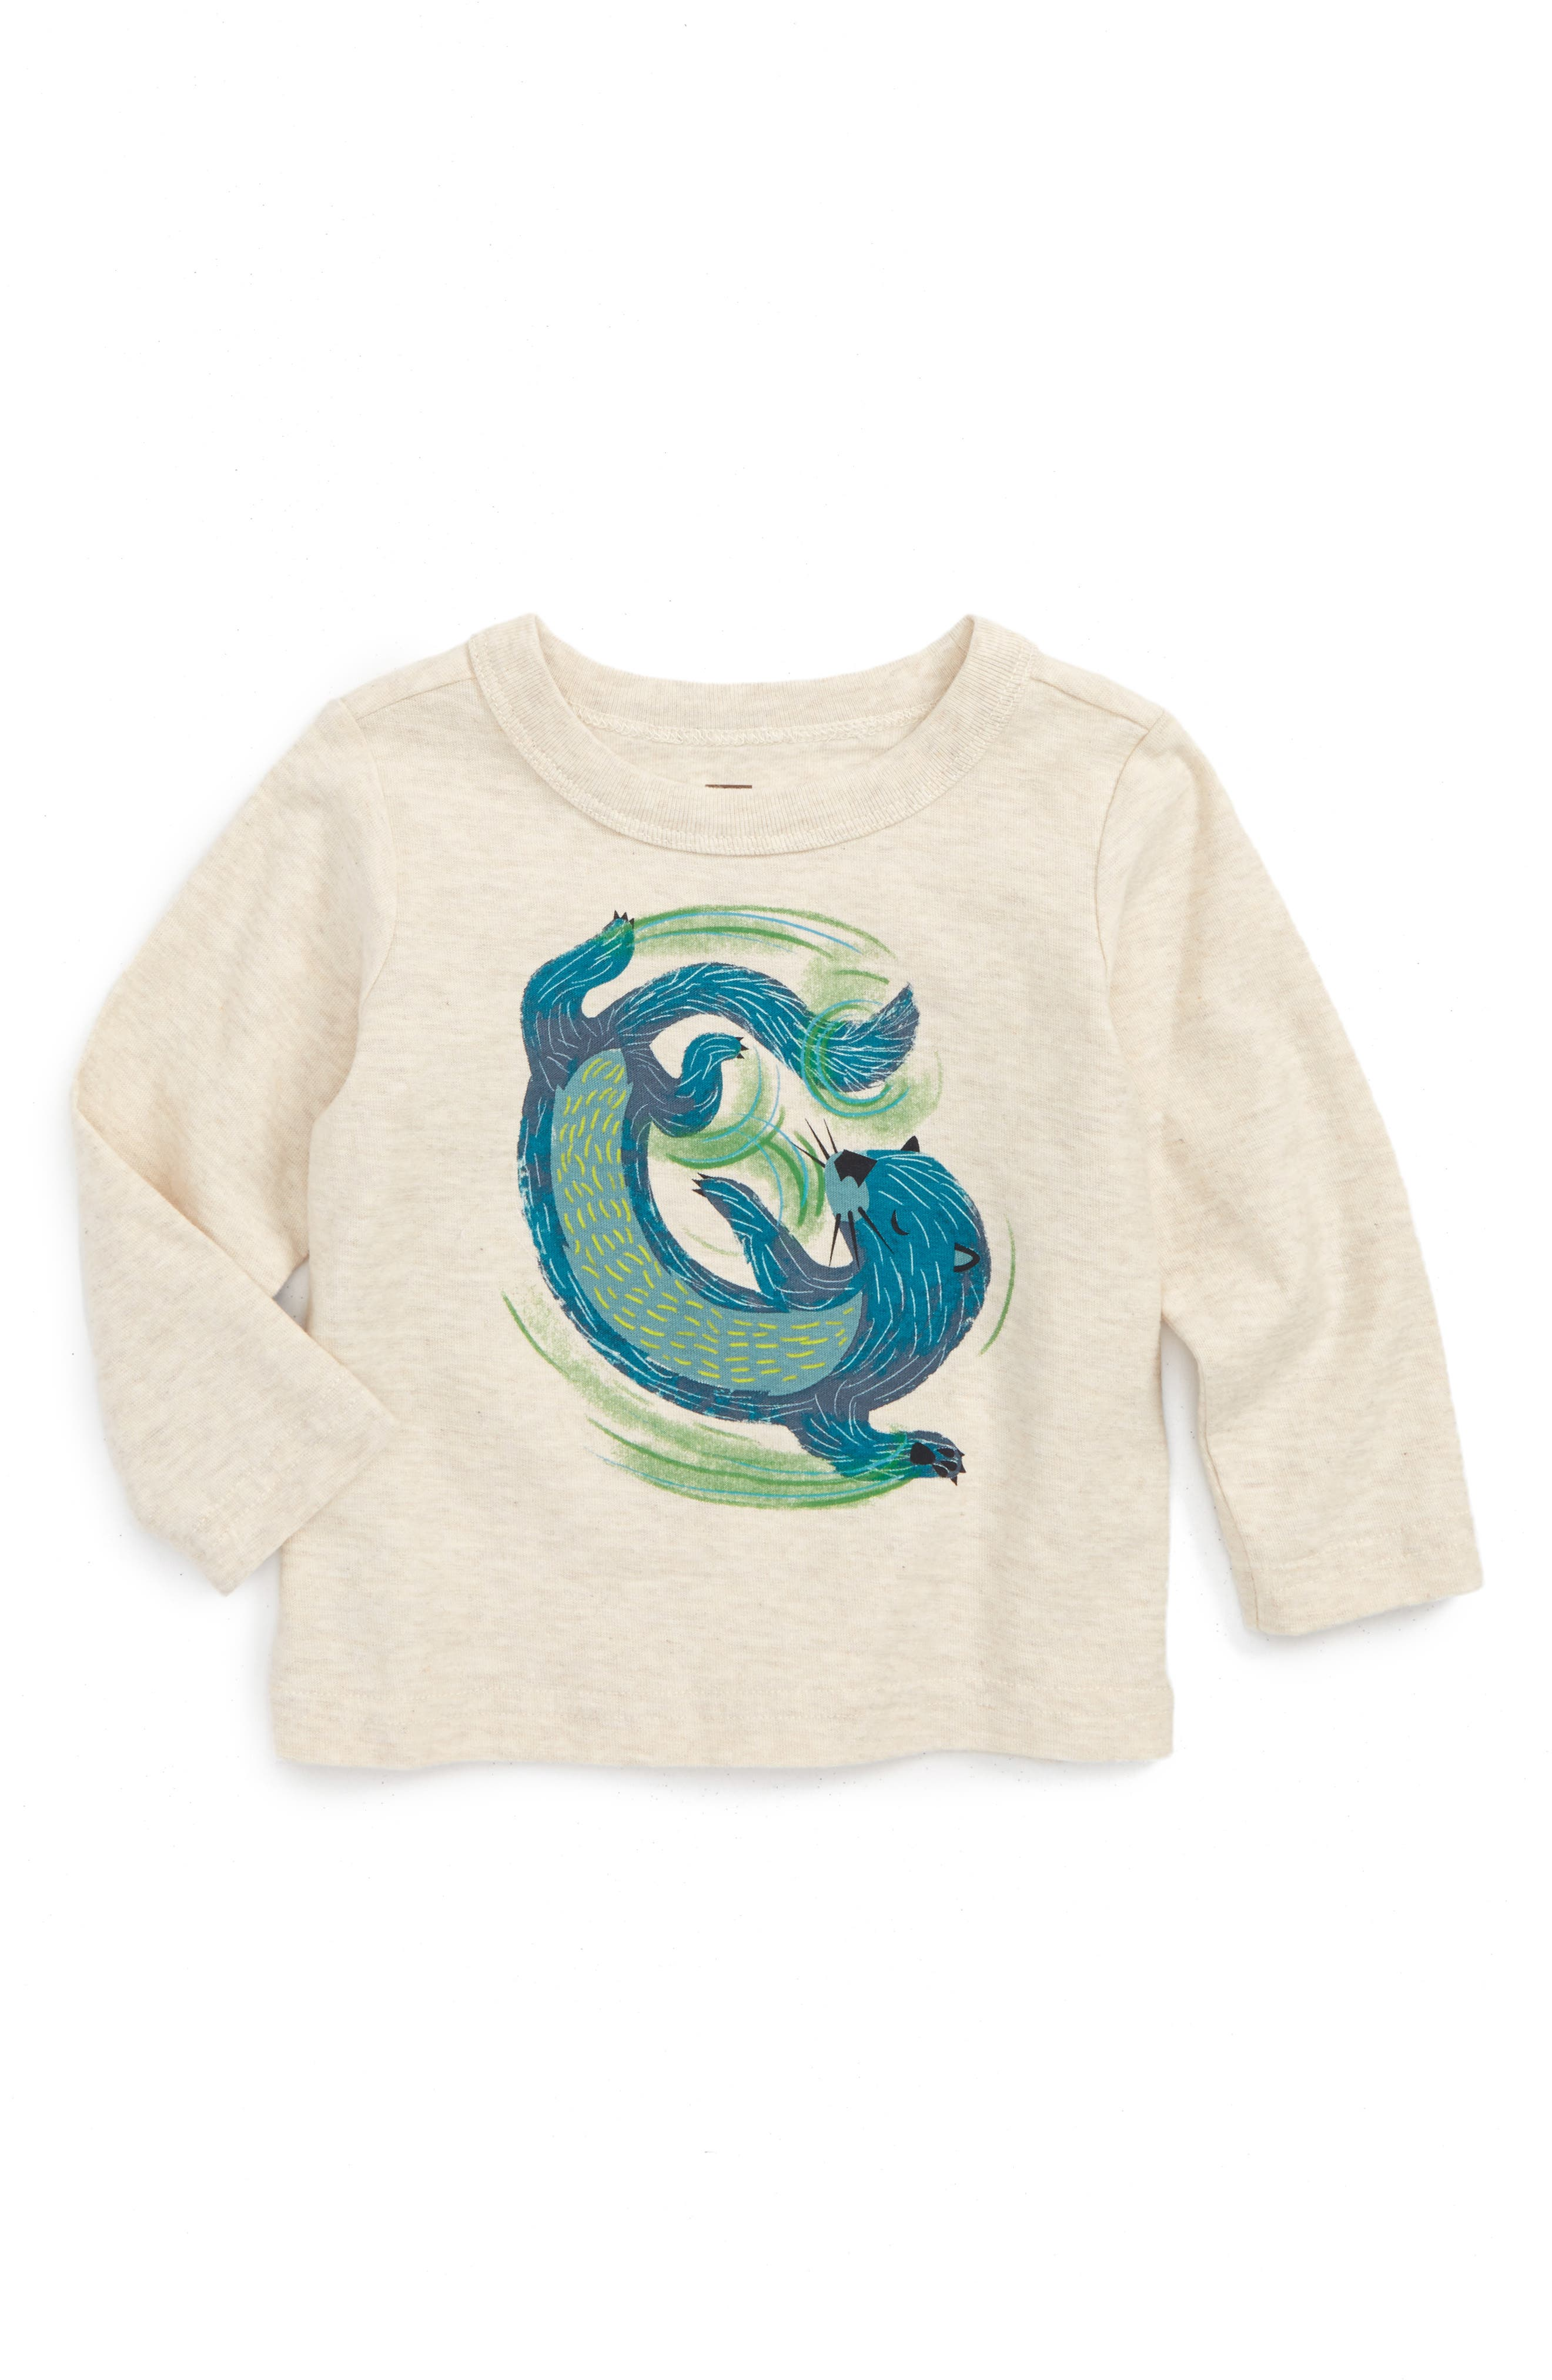 Tea Collection River Otter Graphic T-Shirt (Baby Boys)